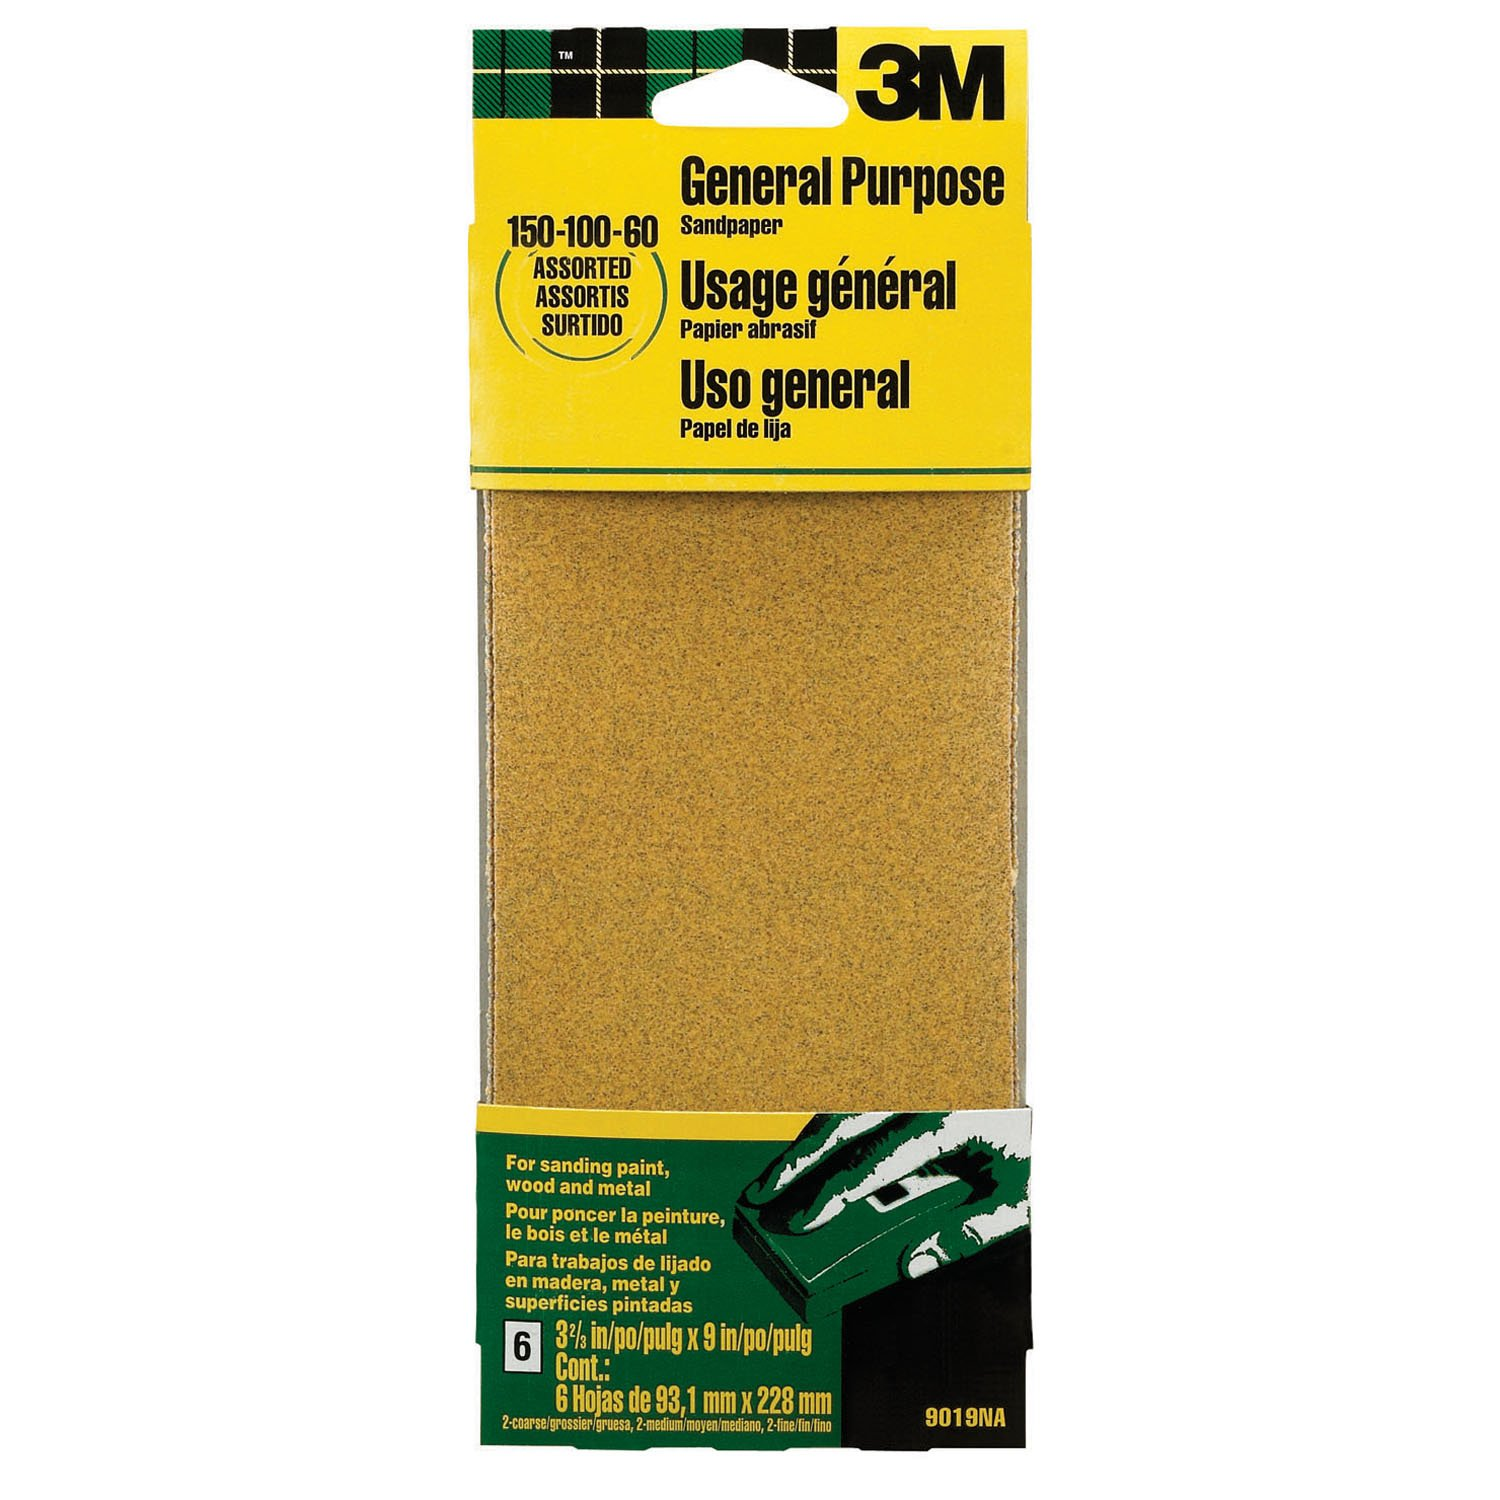 3M 9015 General Purpose Sandpaper Sheets 3m  234 30mmx55m  general purpose